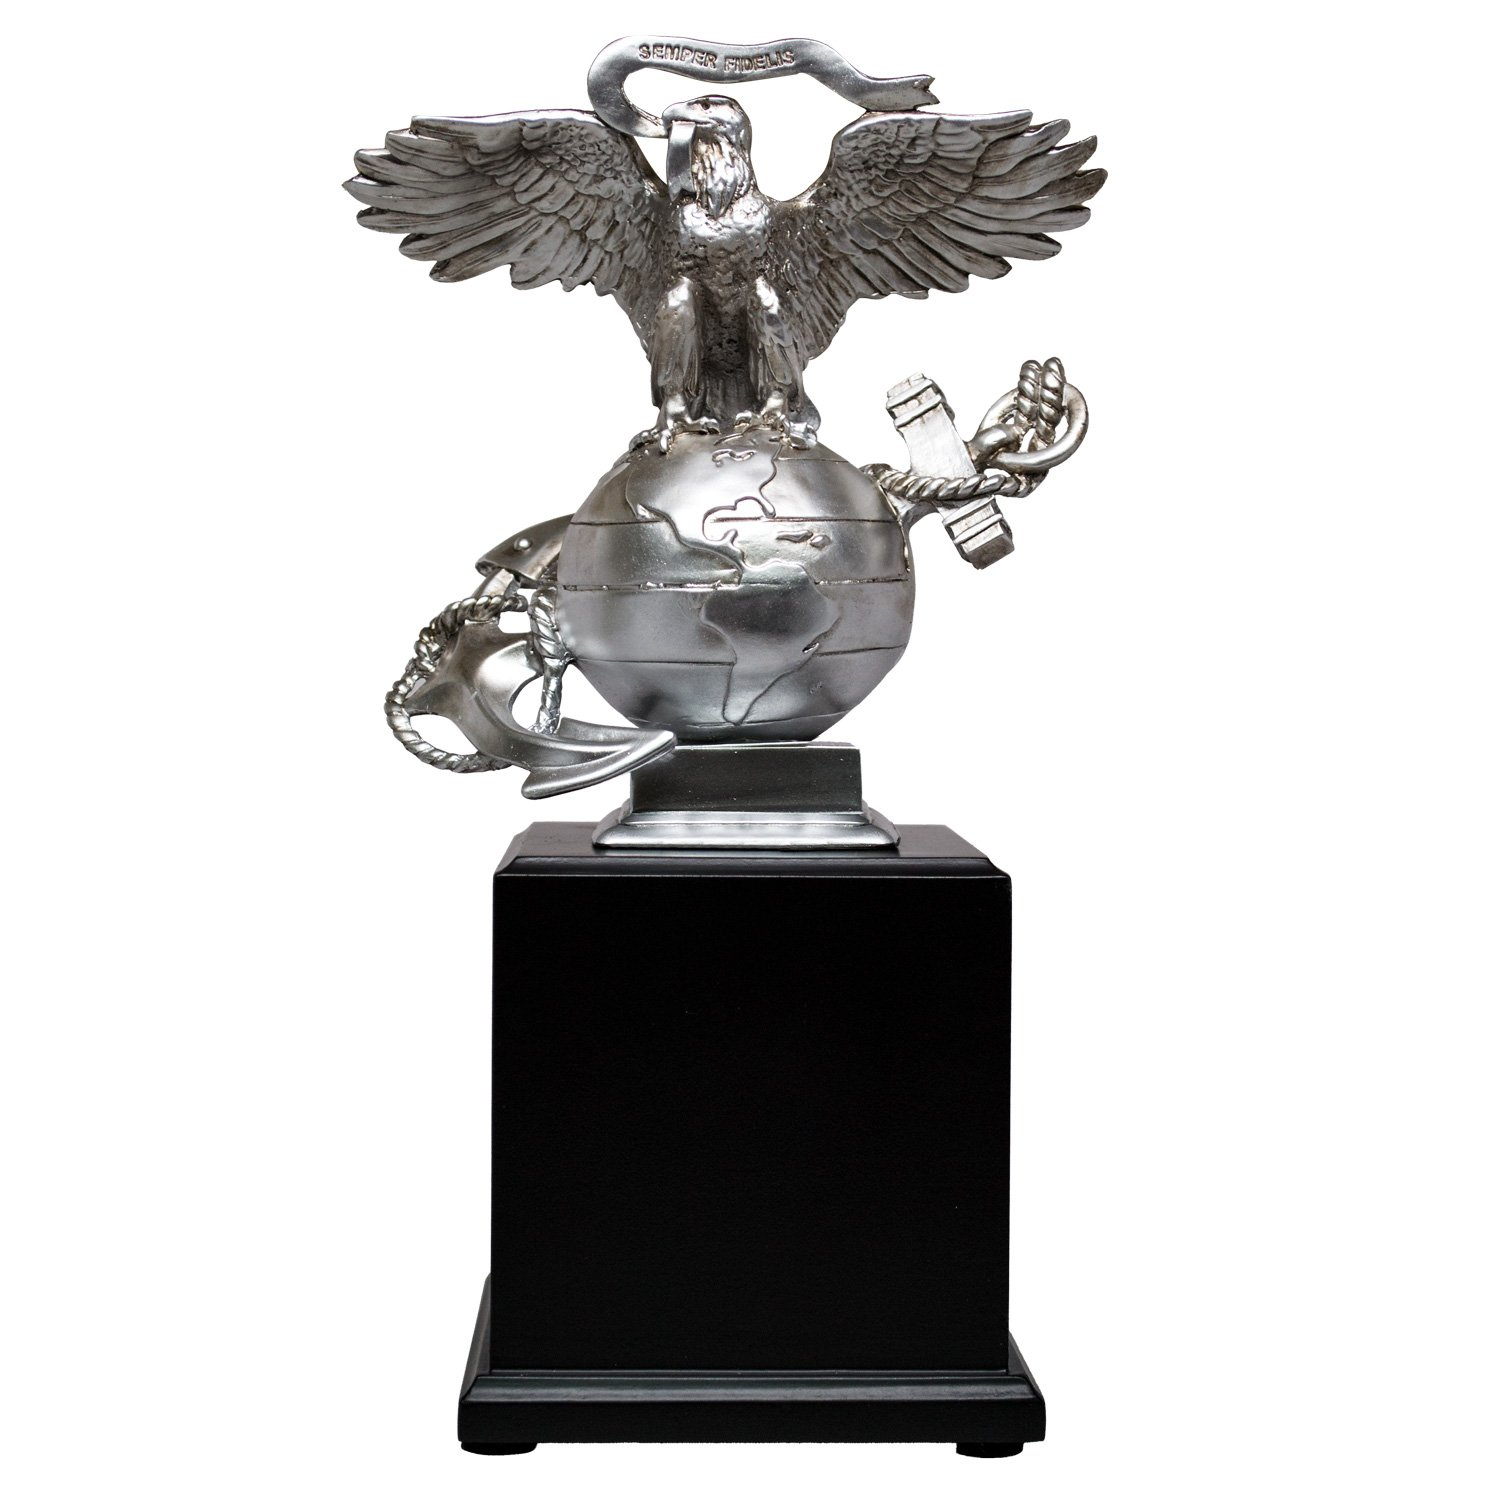 USMC 3D Eagle Globe & Anchor Marine Corps Statue by Military Gift Shop